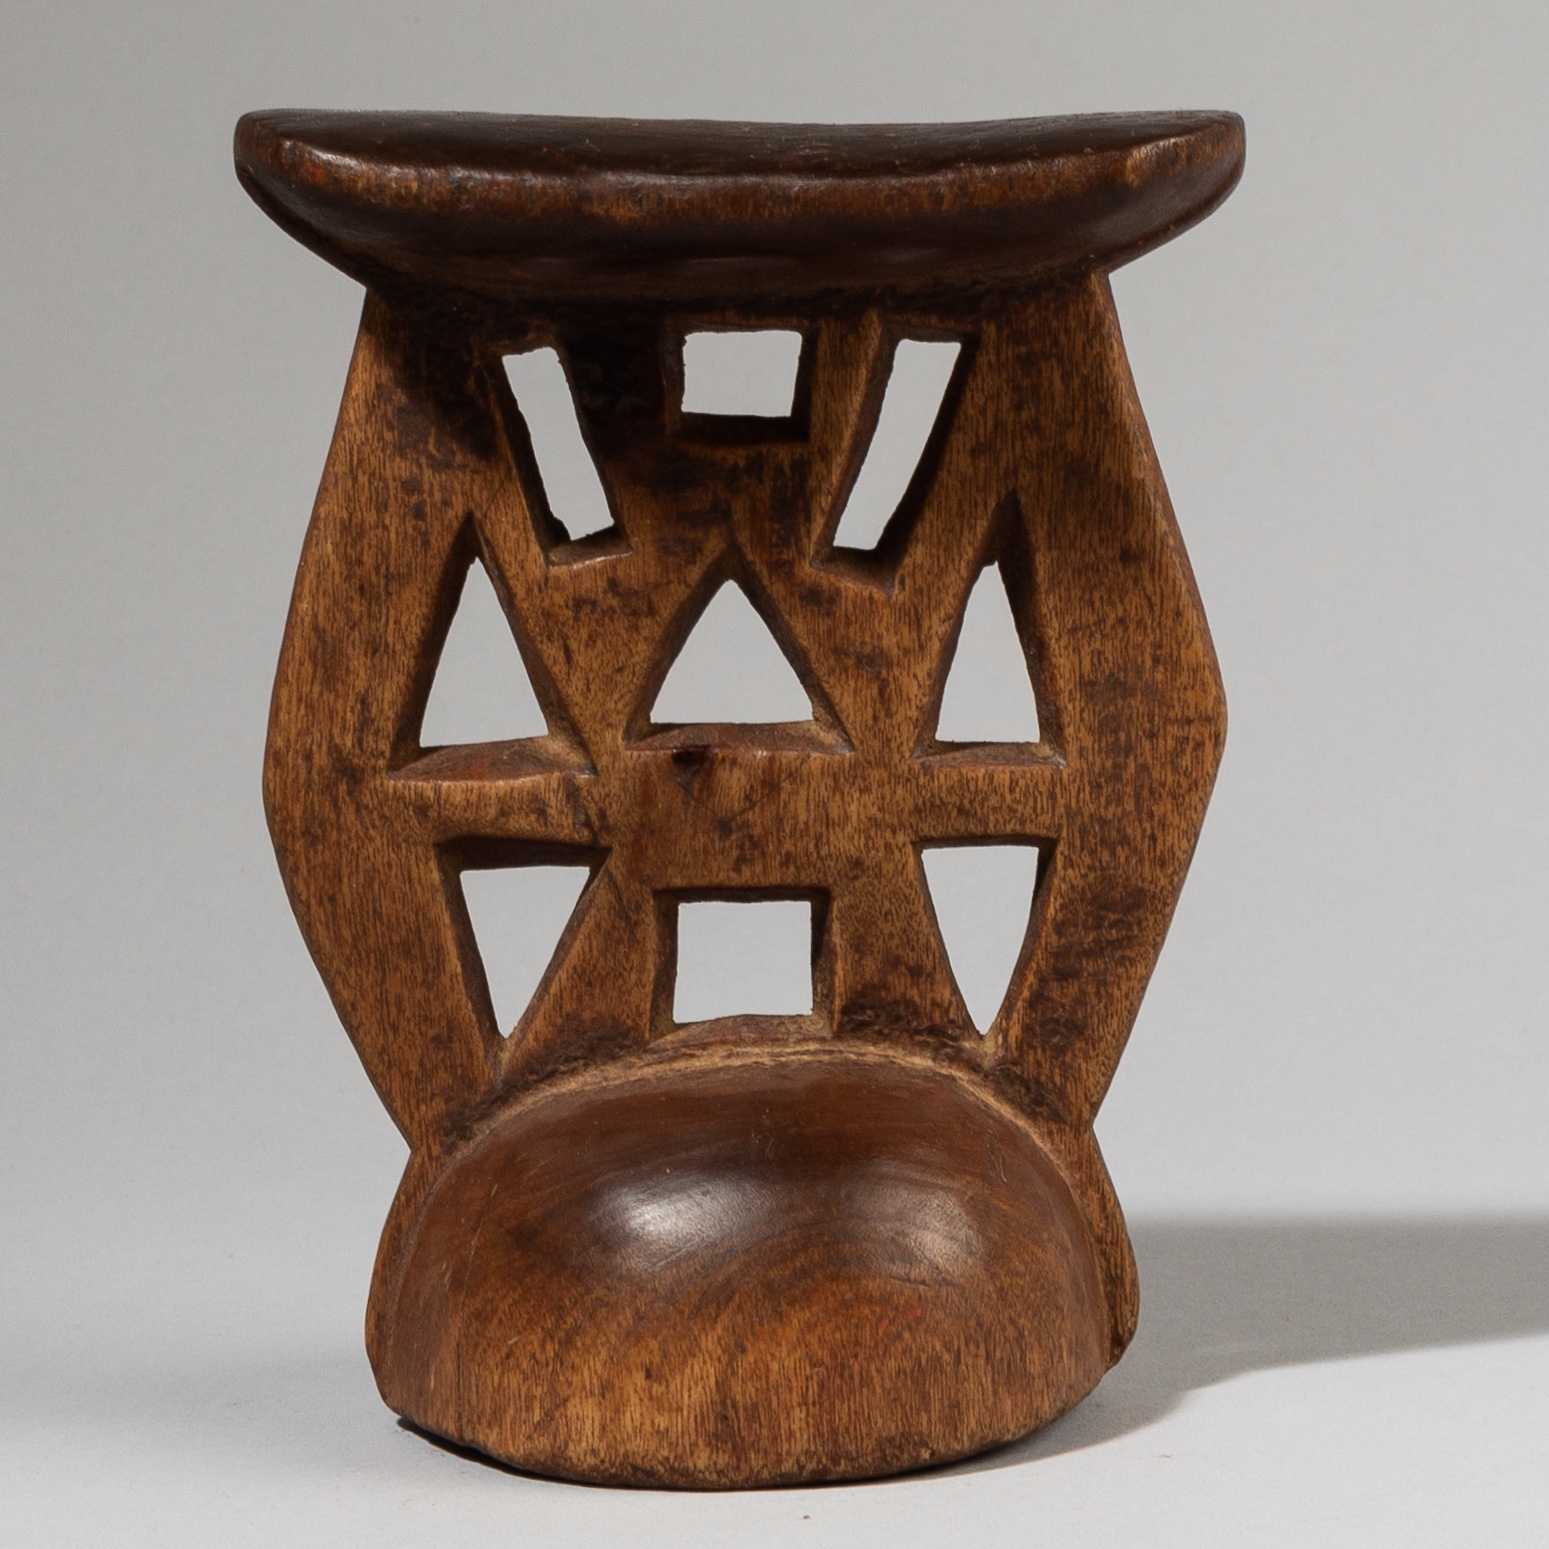 A GLORIOUSLY GRAPHIC HIMBA HEADREST, NAMIBIA, S AFRICA ( No 3856 )